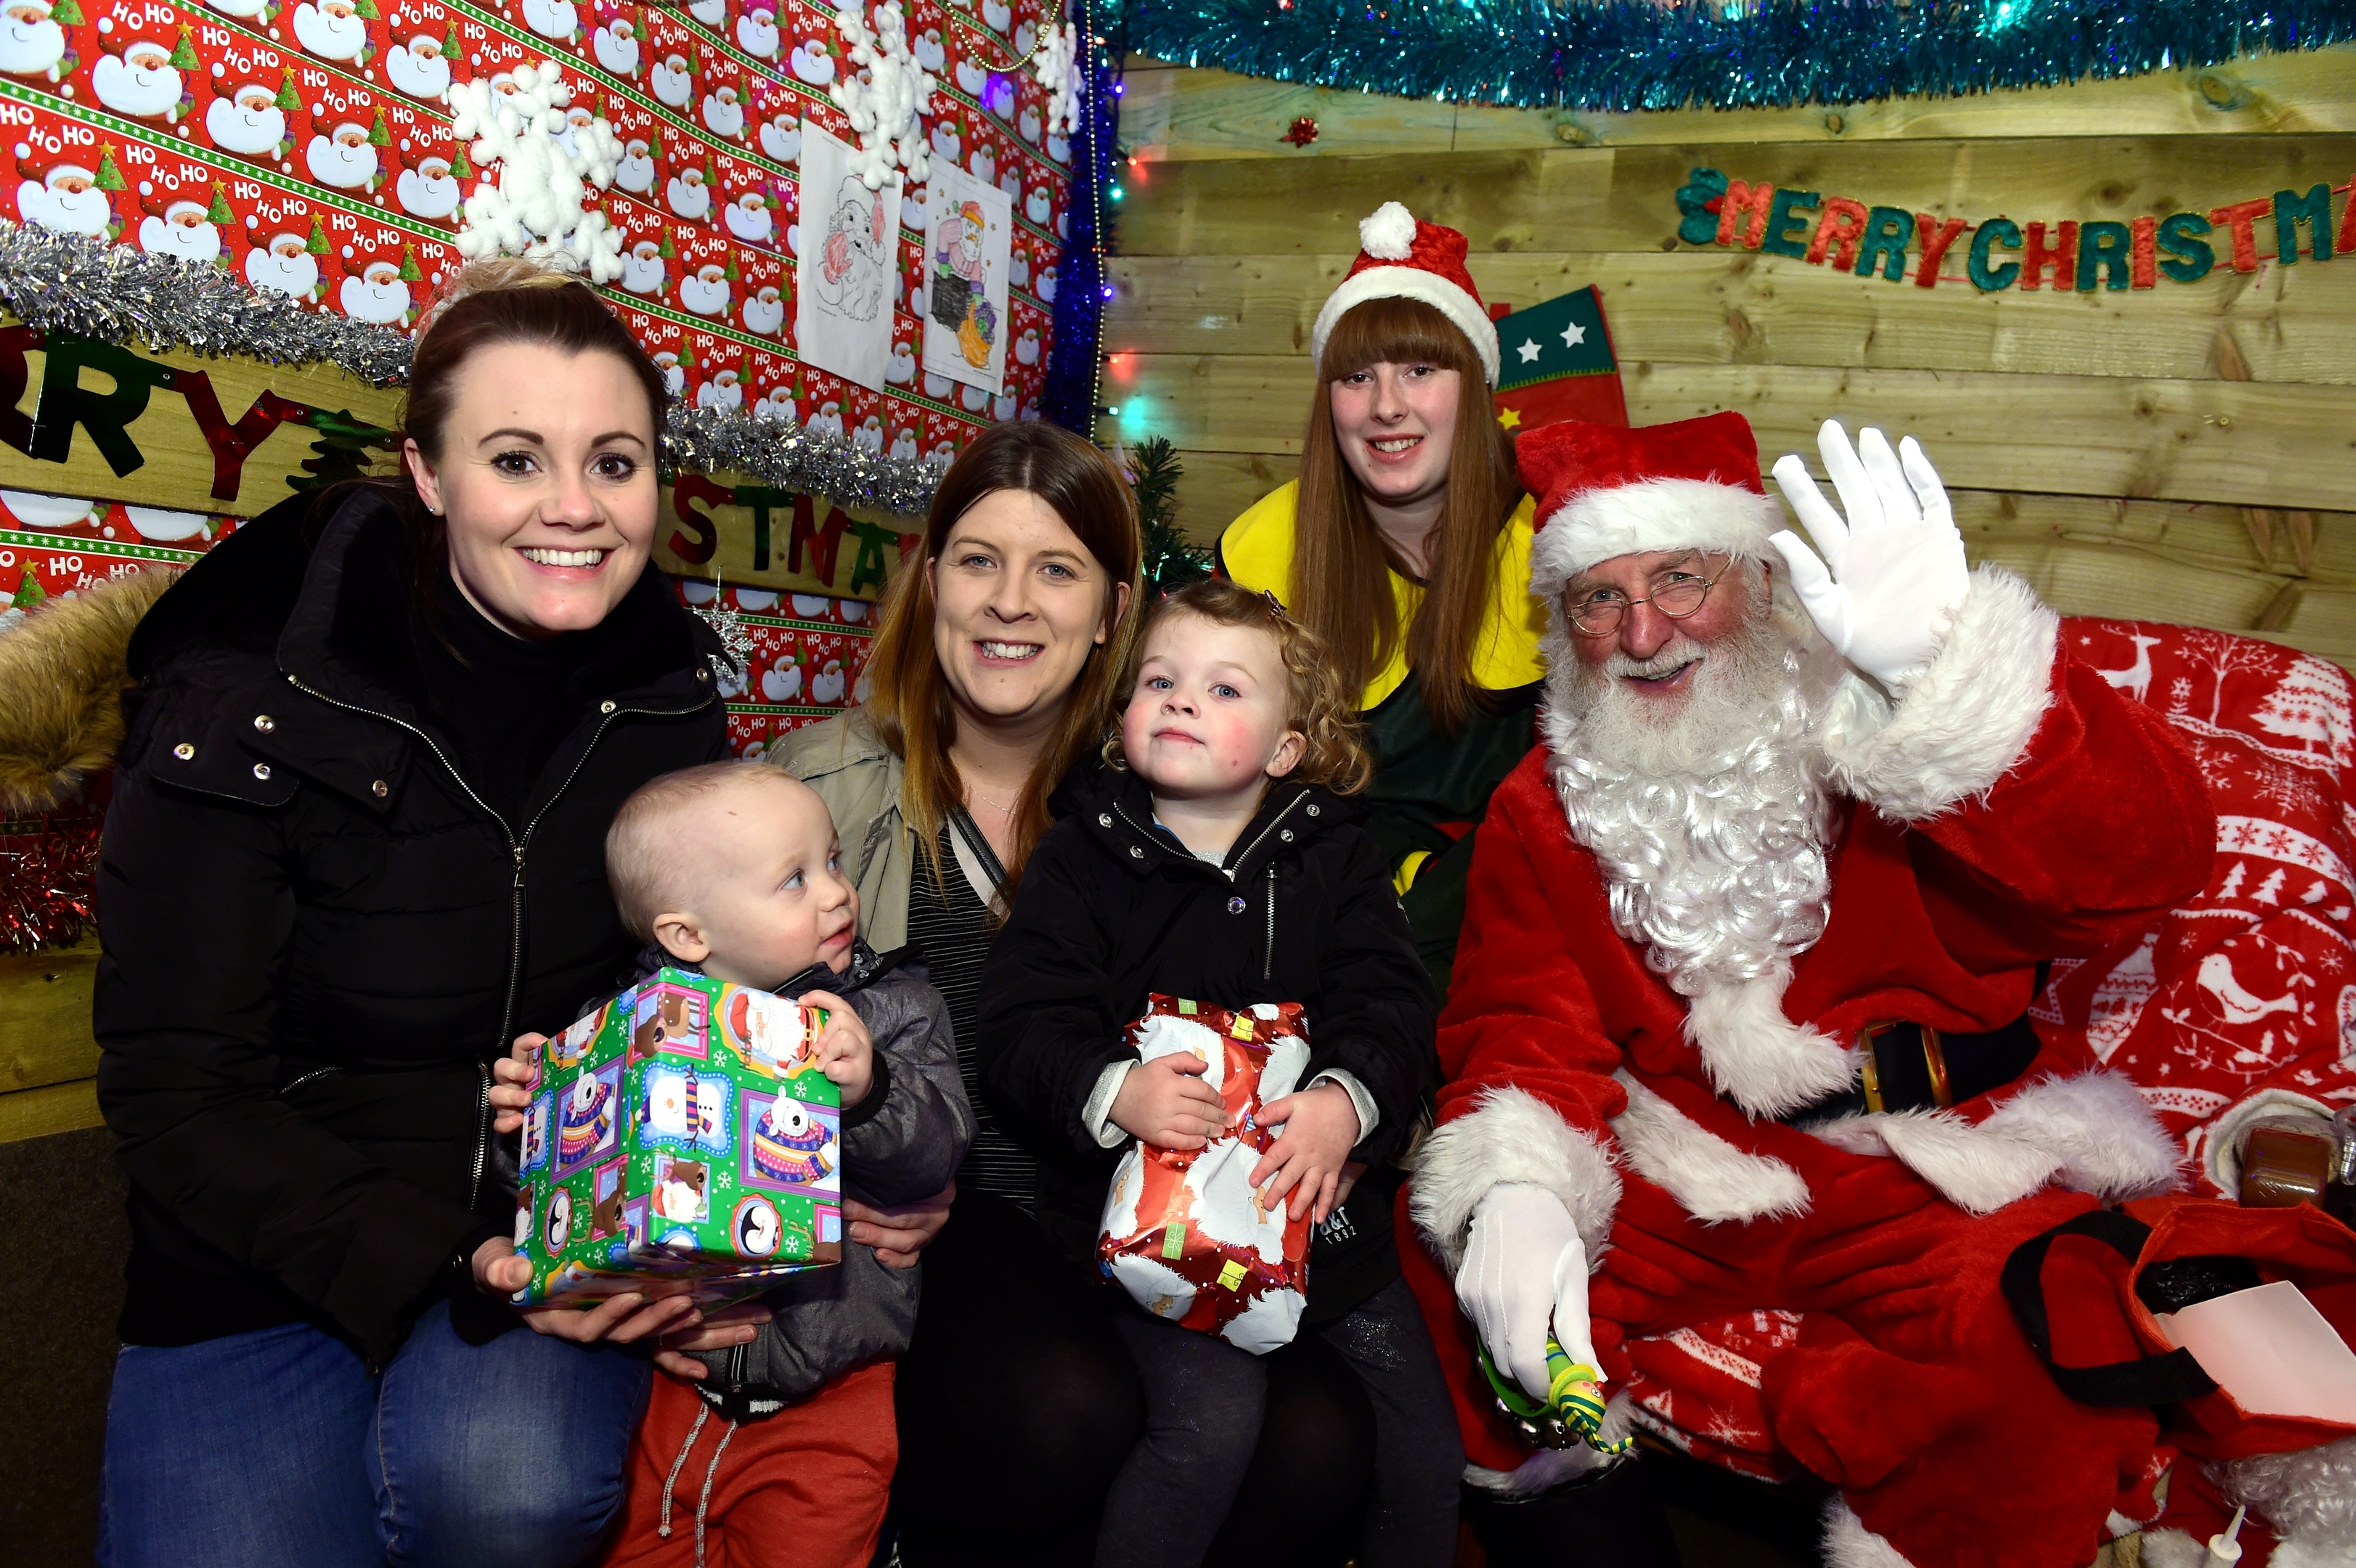 Keery Durno with Cloe Flett and Stephanie McHugh with Mia Durno, visited Santa at BA Stores